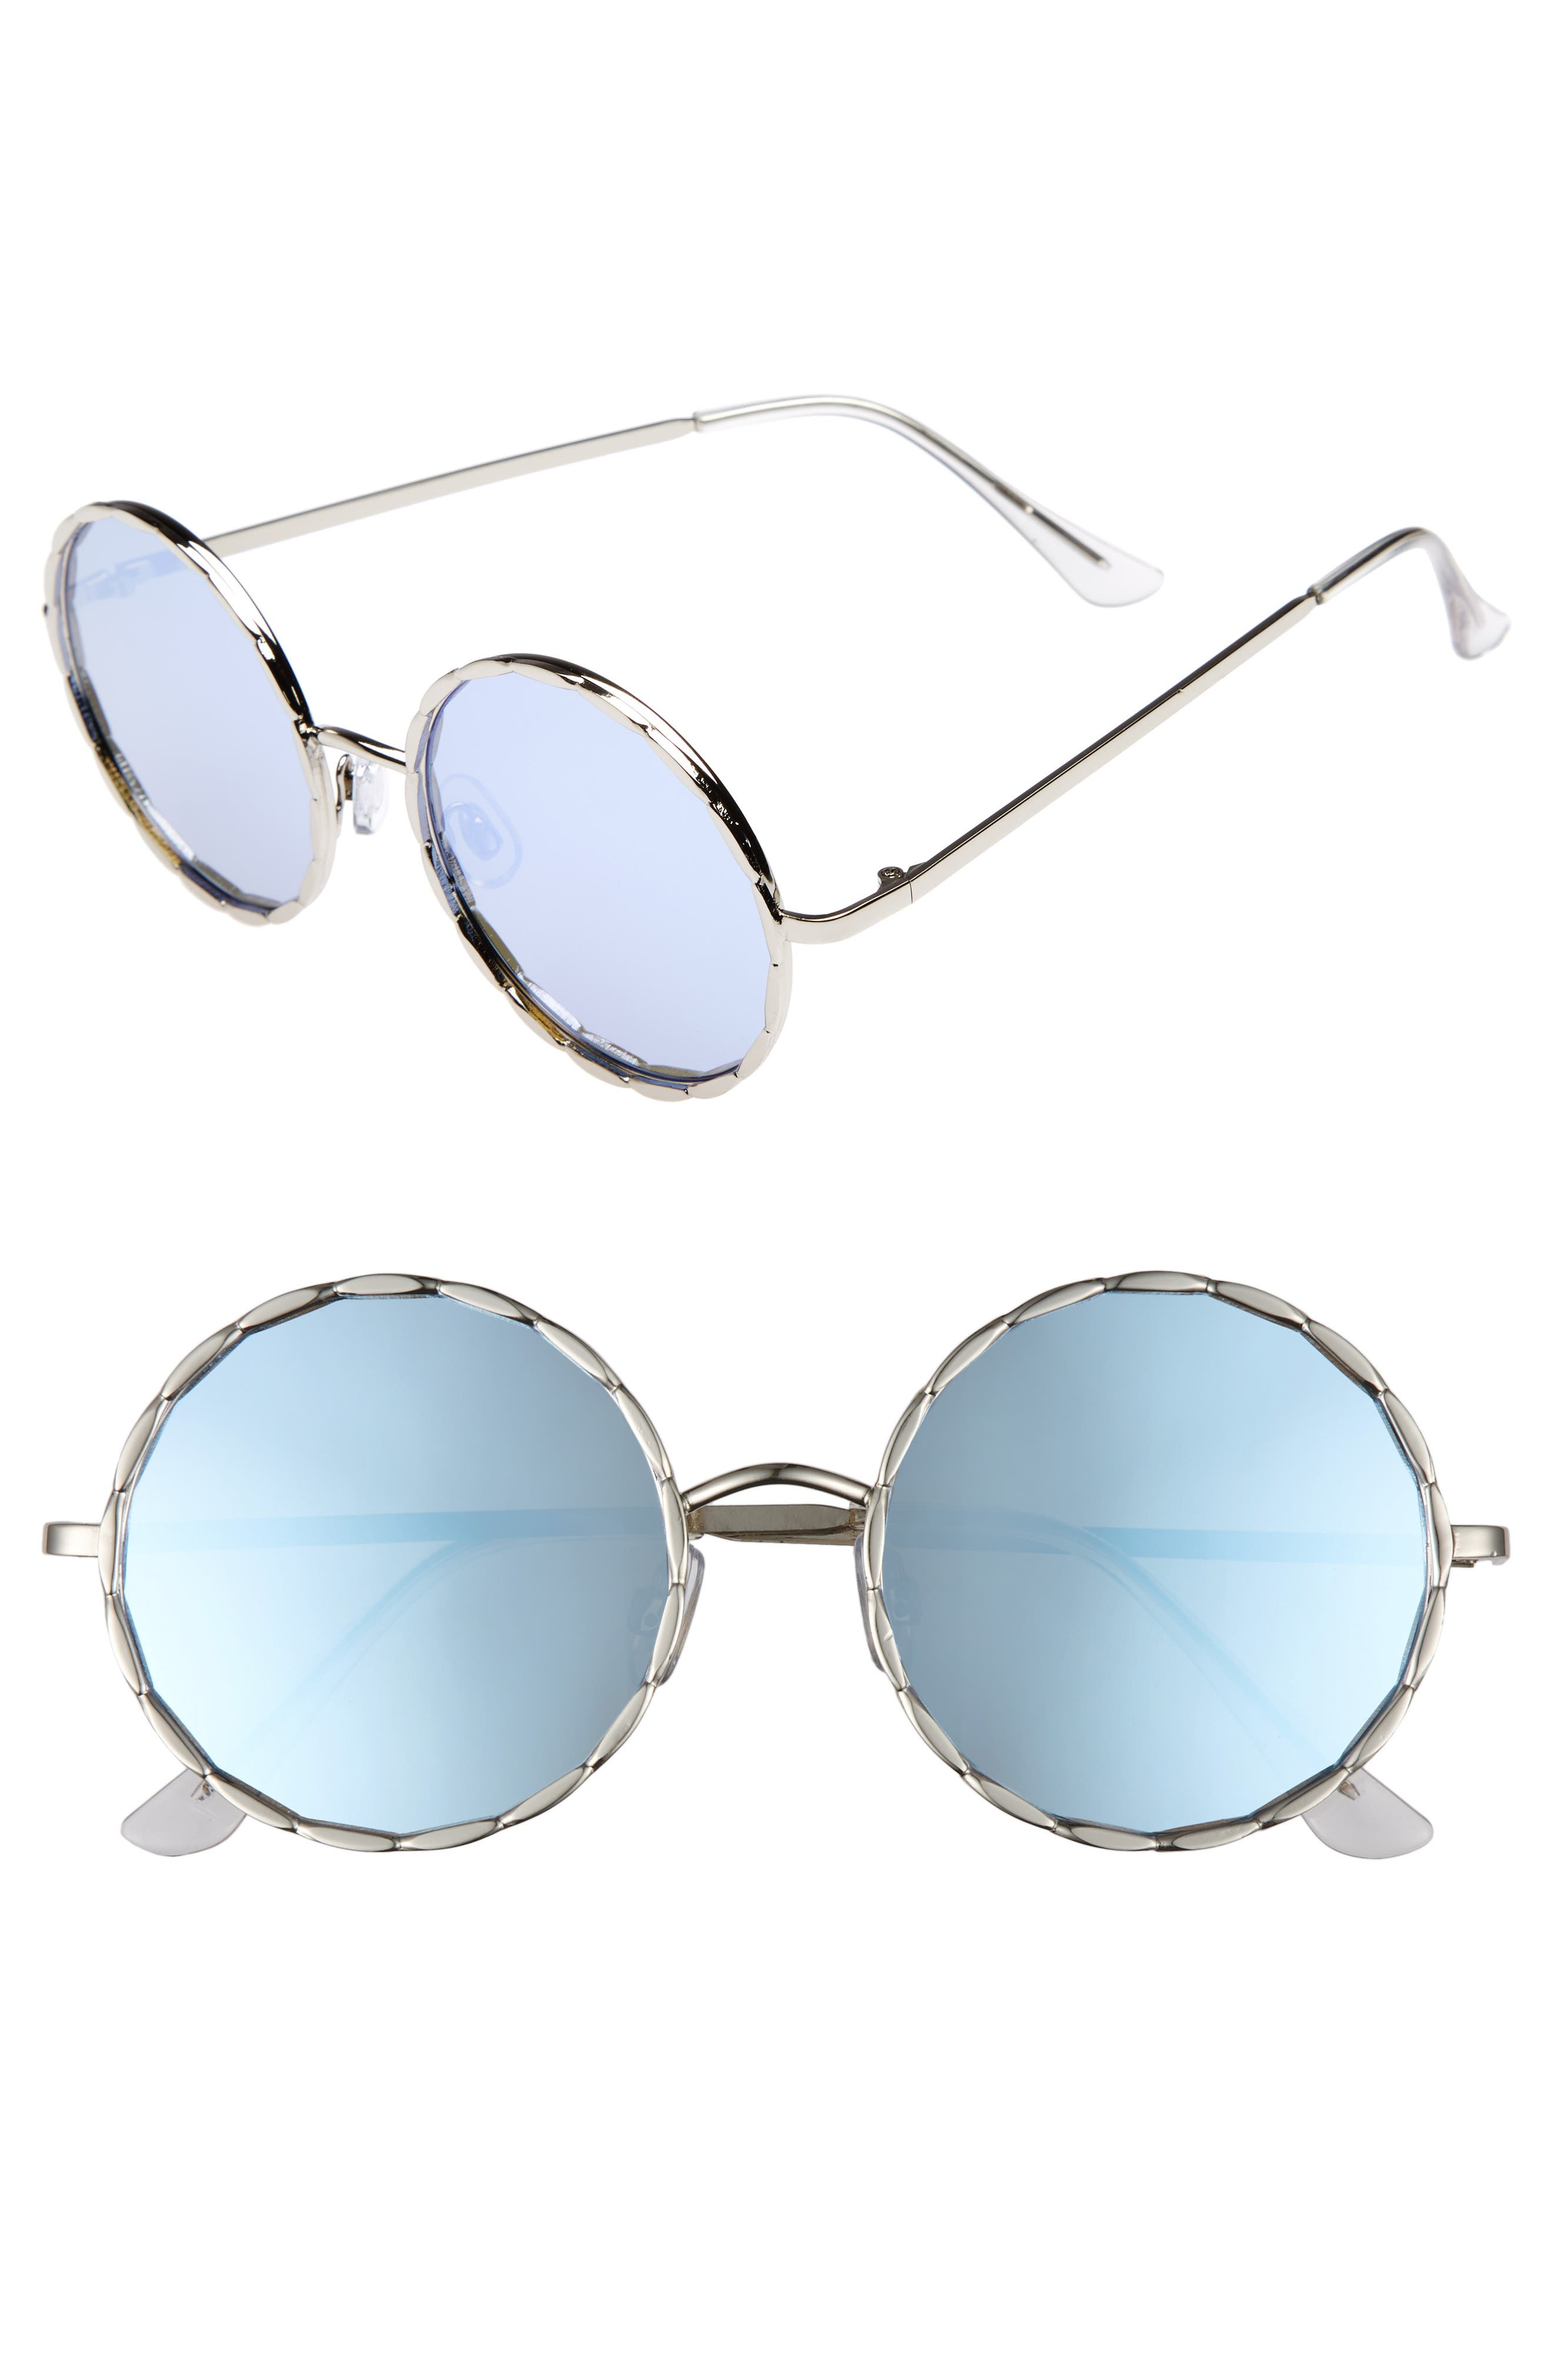 58mm Textured Round Sunglasses,                             Main thumbnail 1, color,                             Silver/ Blue